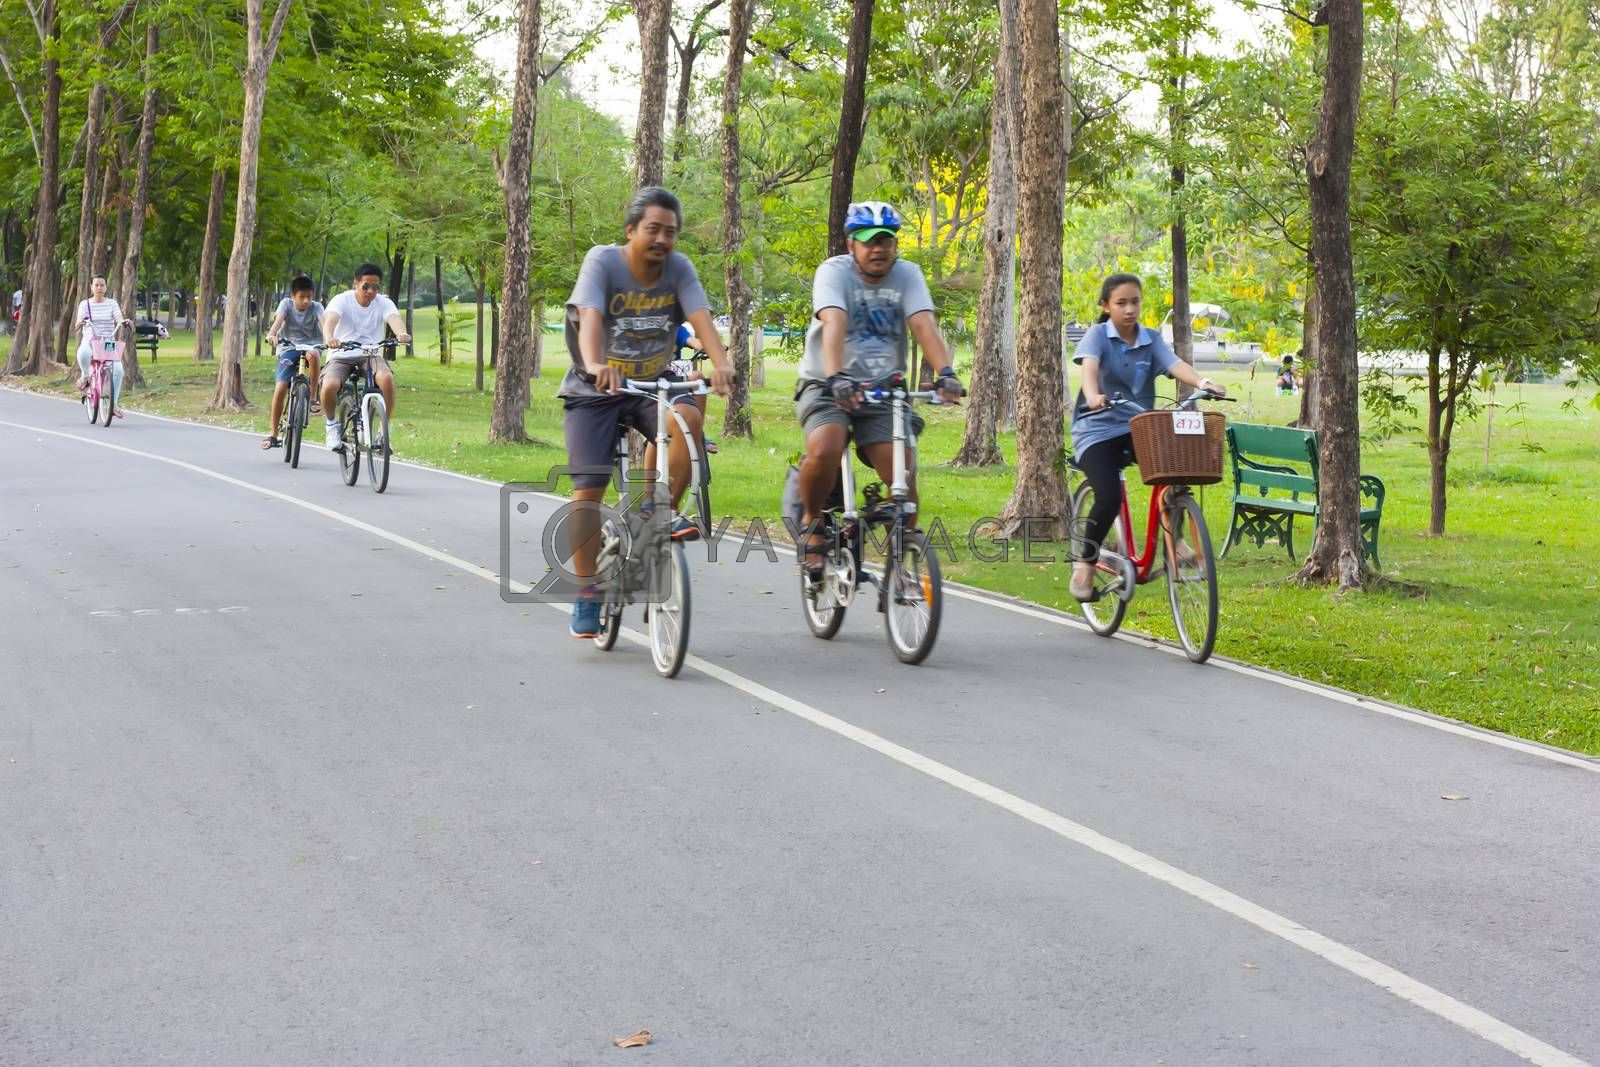 Unidentified people cycling in the park for a good health. Photo: Amnarj2006/ yaymicro.com